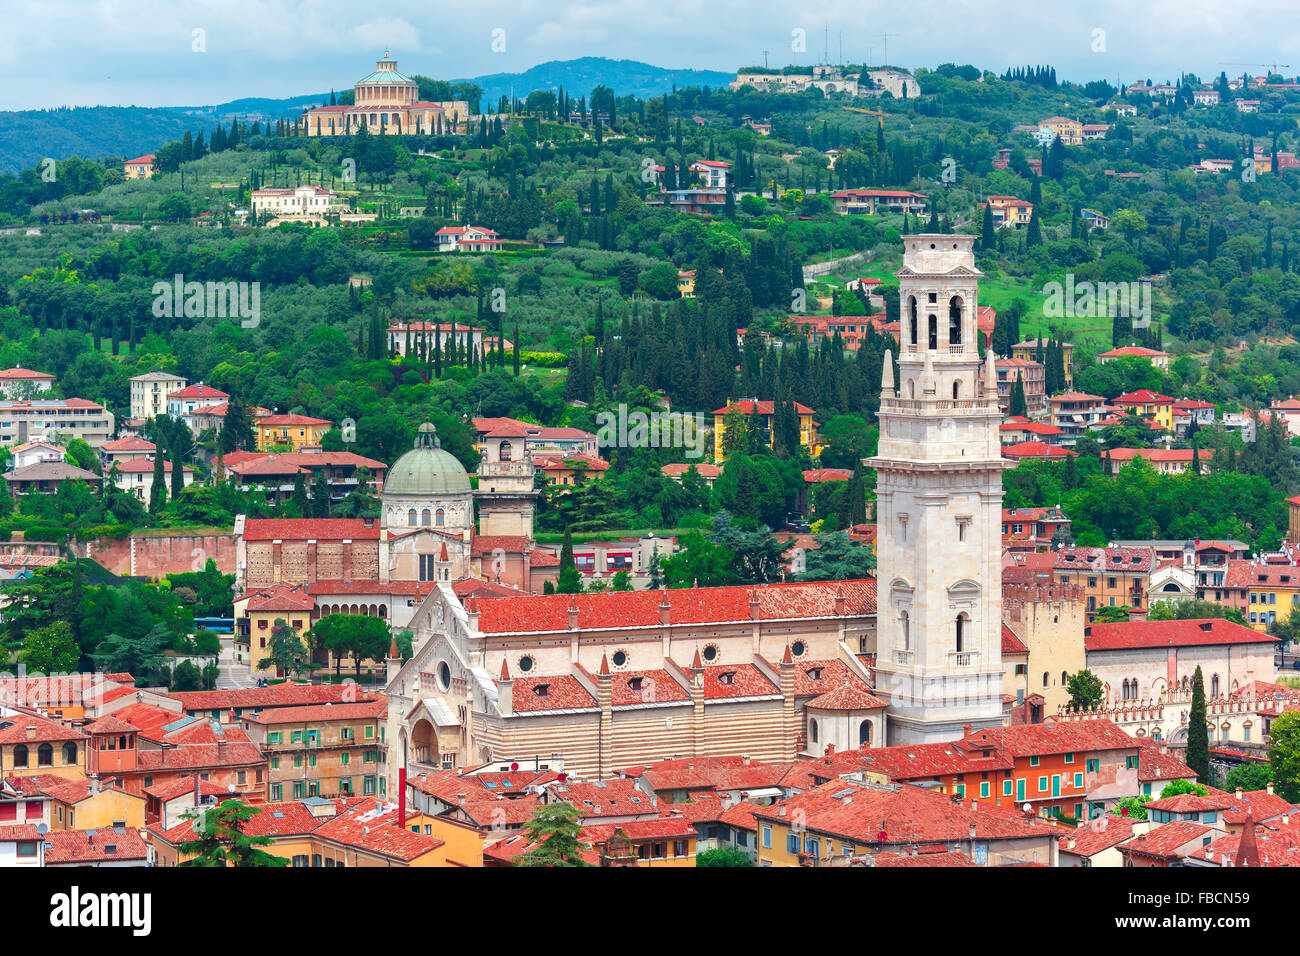 Aerial View Of Duomo And Red Roofs, Verona, Italy